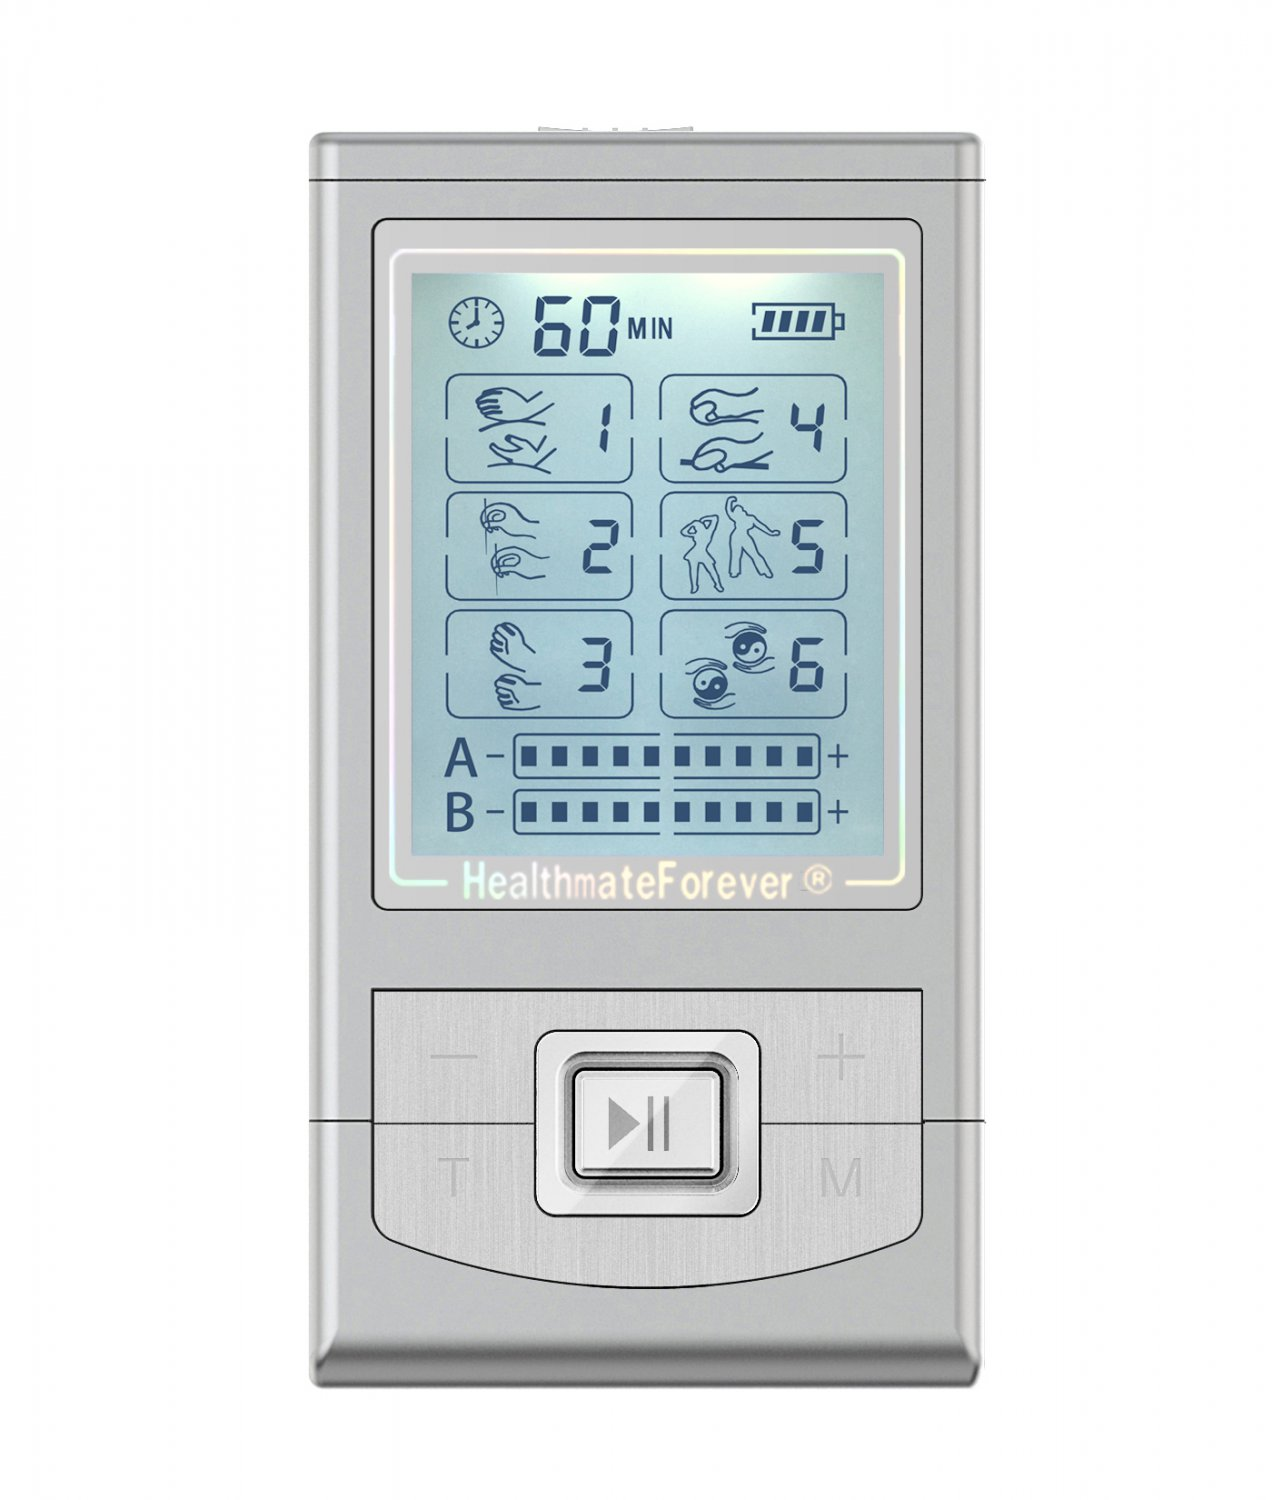 PLUS6AB HealthmateForever TENS Unit Electrical Muscle Stimulator Silver